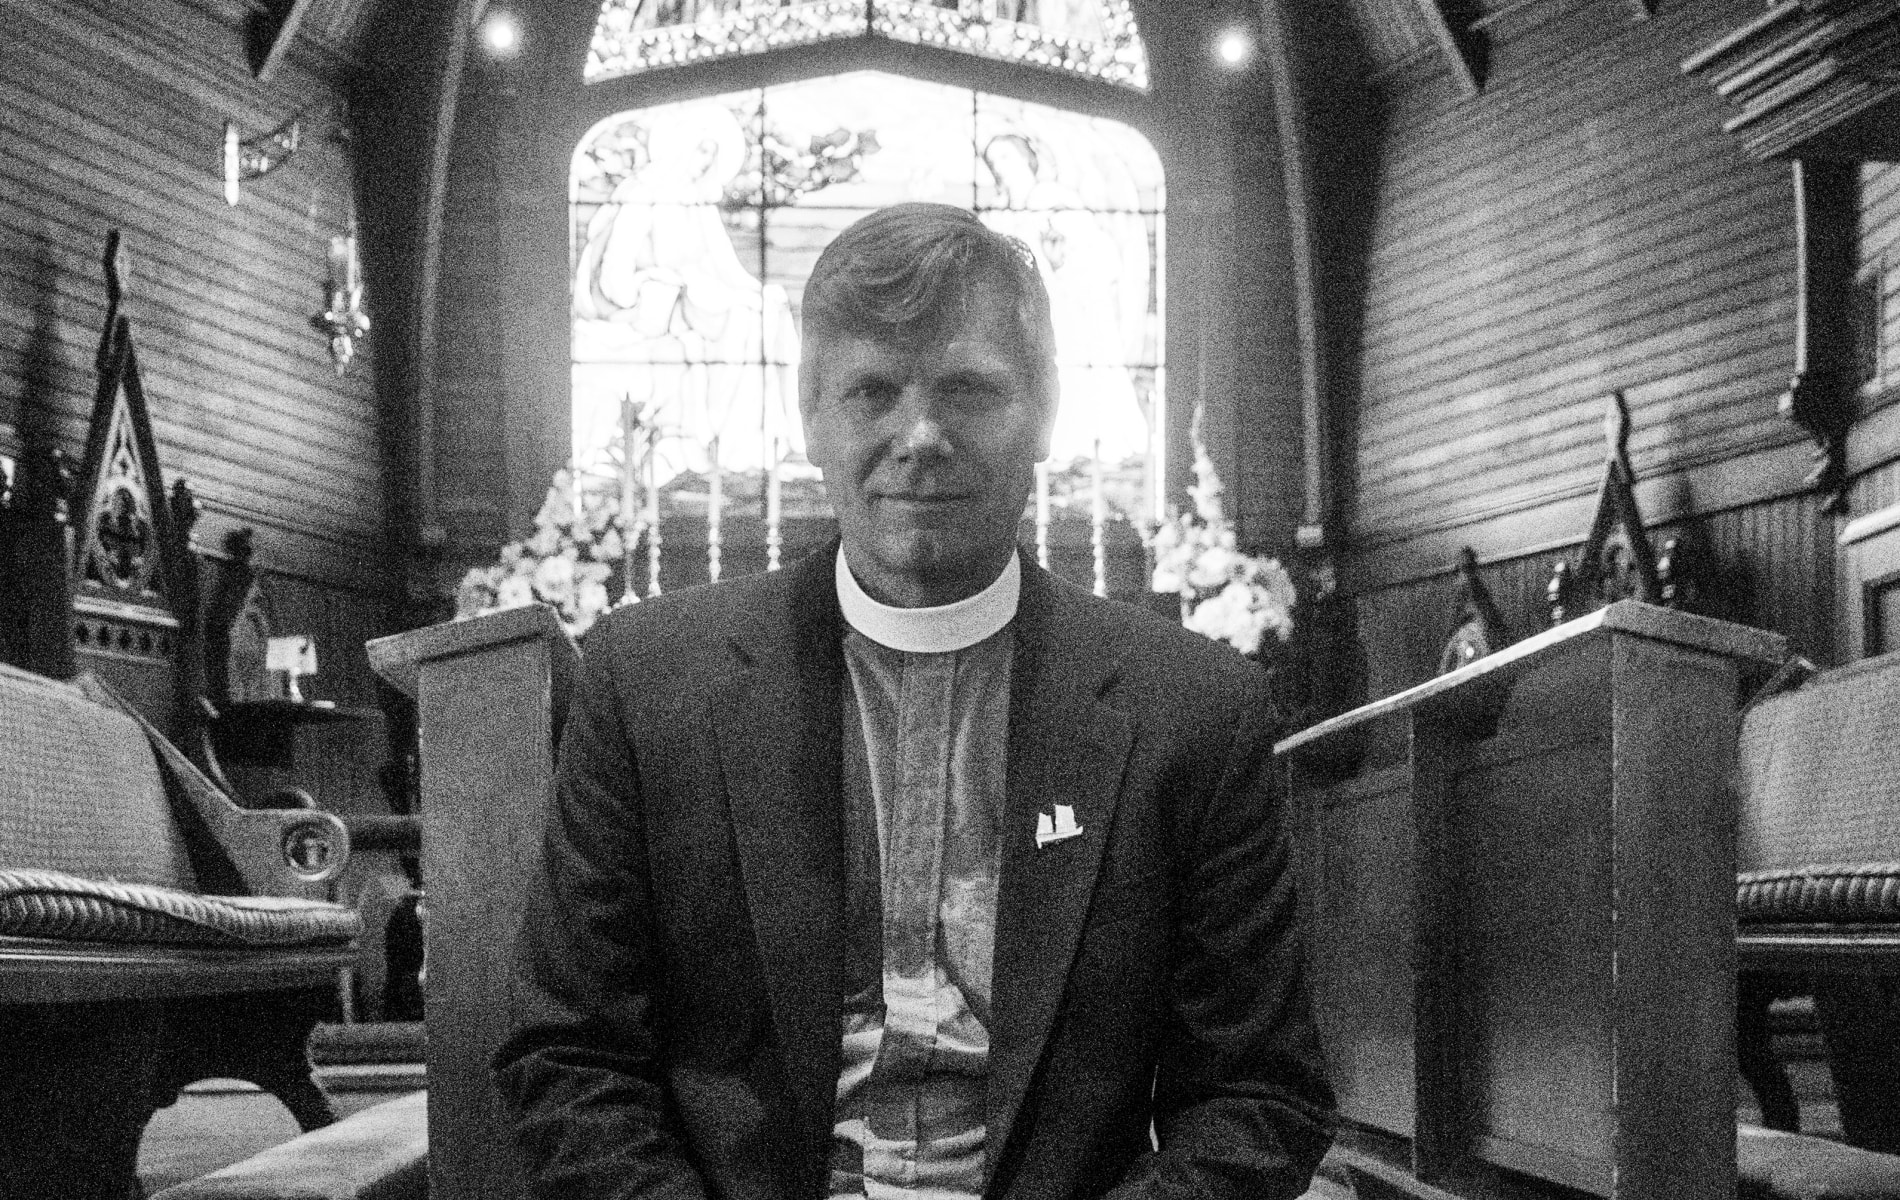 Reverend Jeff Lewis celebrates first year at St. Mary's Church